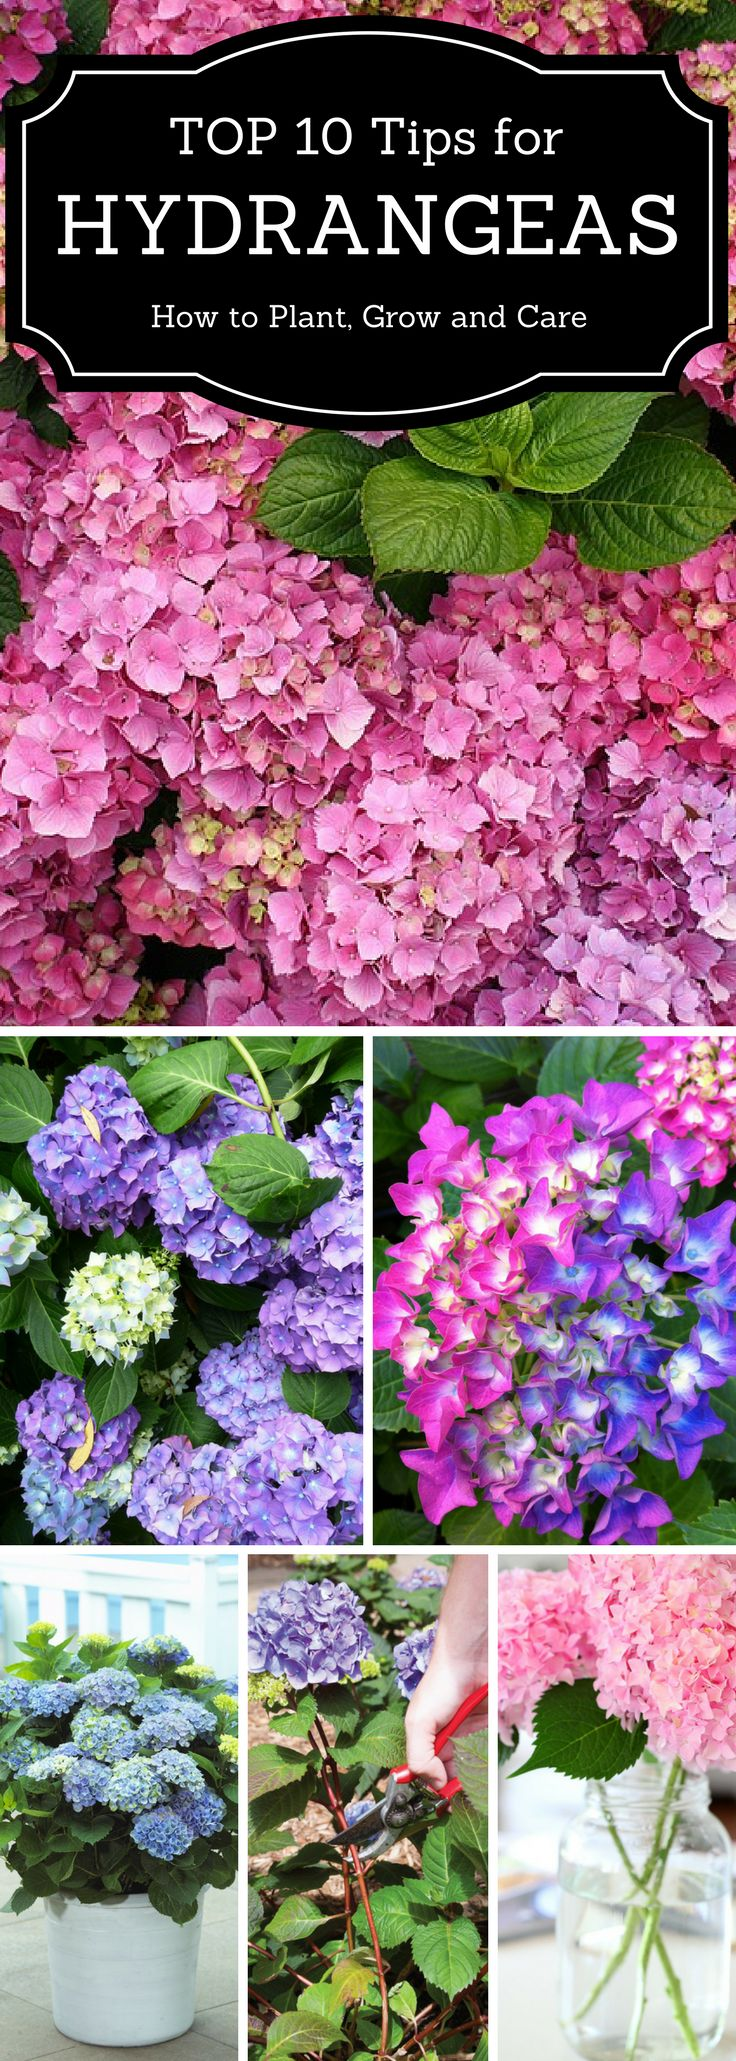 Top 10 Tips for Hydrangeas | How to Plant, Grow, and Care for Hydrangeas | Read these 10 tips for planting and caring for beautiful hydrangeas.